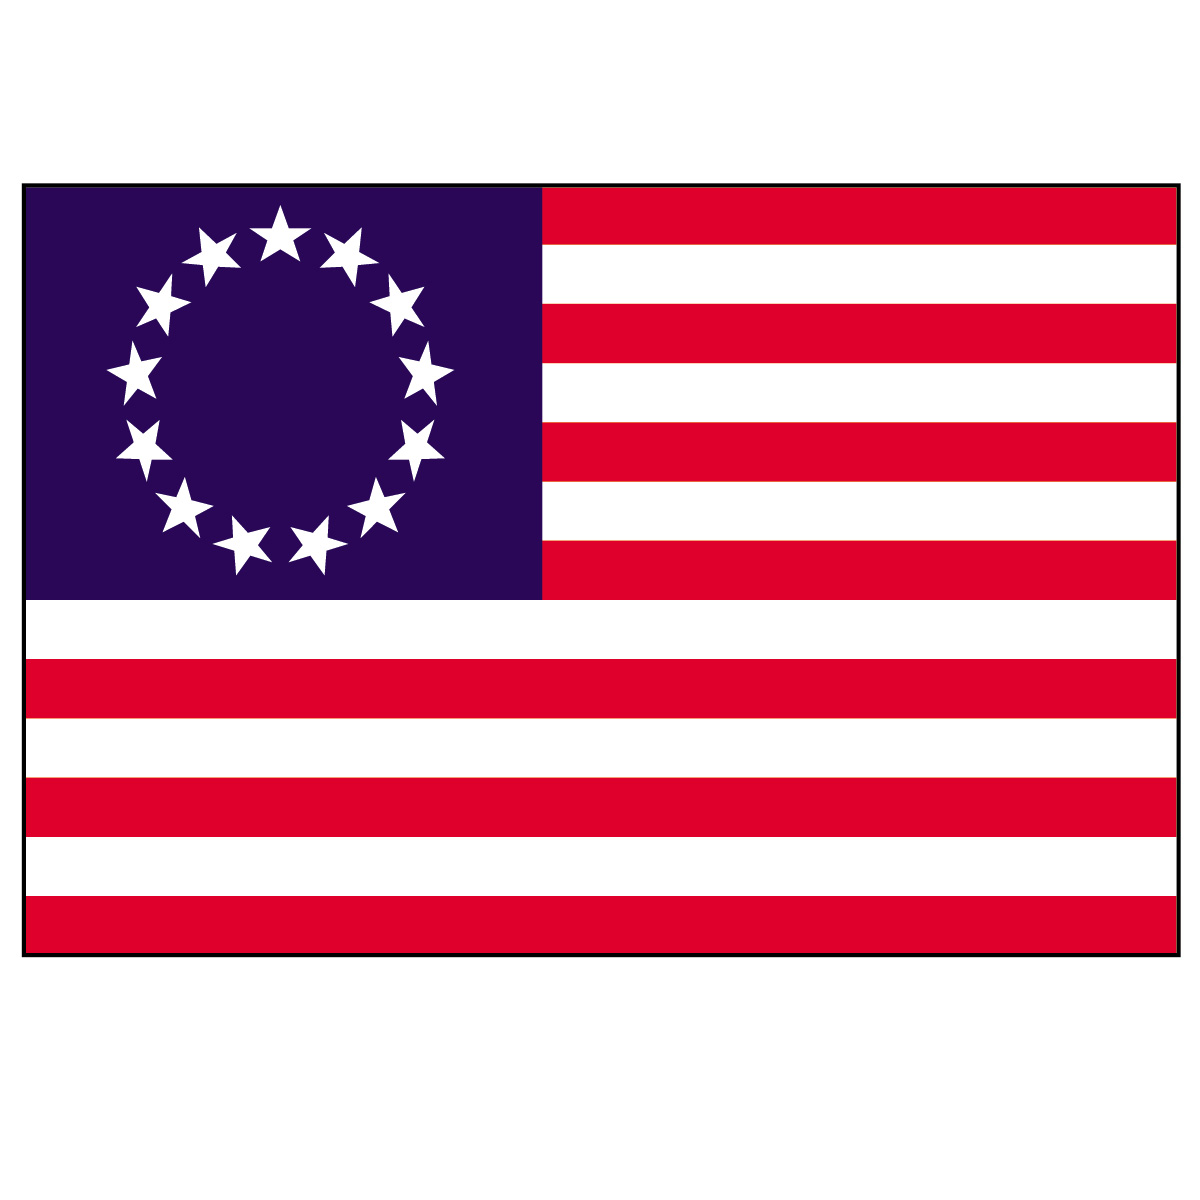 American Flag clipart american revolution Intersection%20clipart Free Clipart 20clipart Images